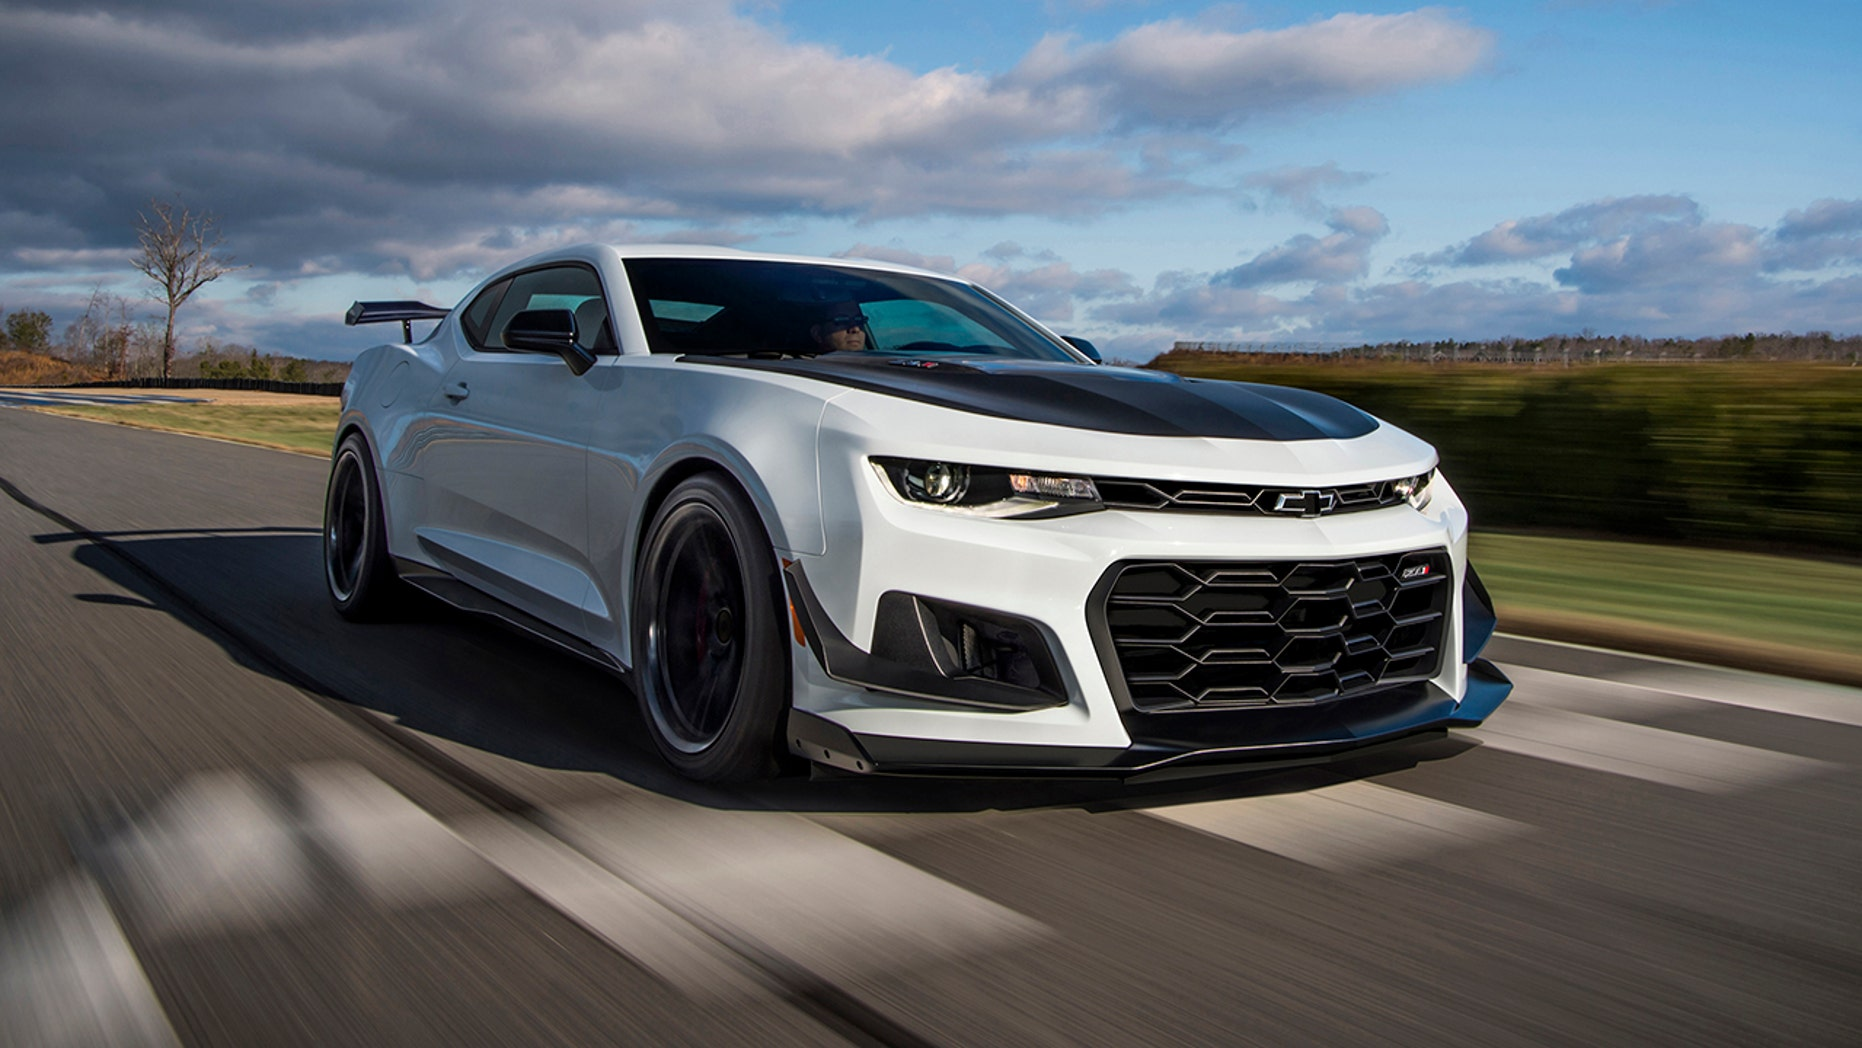 Camaro ZL1 1LE With An Automatic Transmission